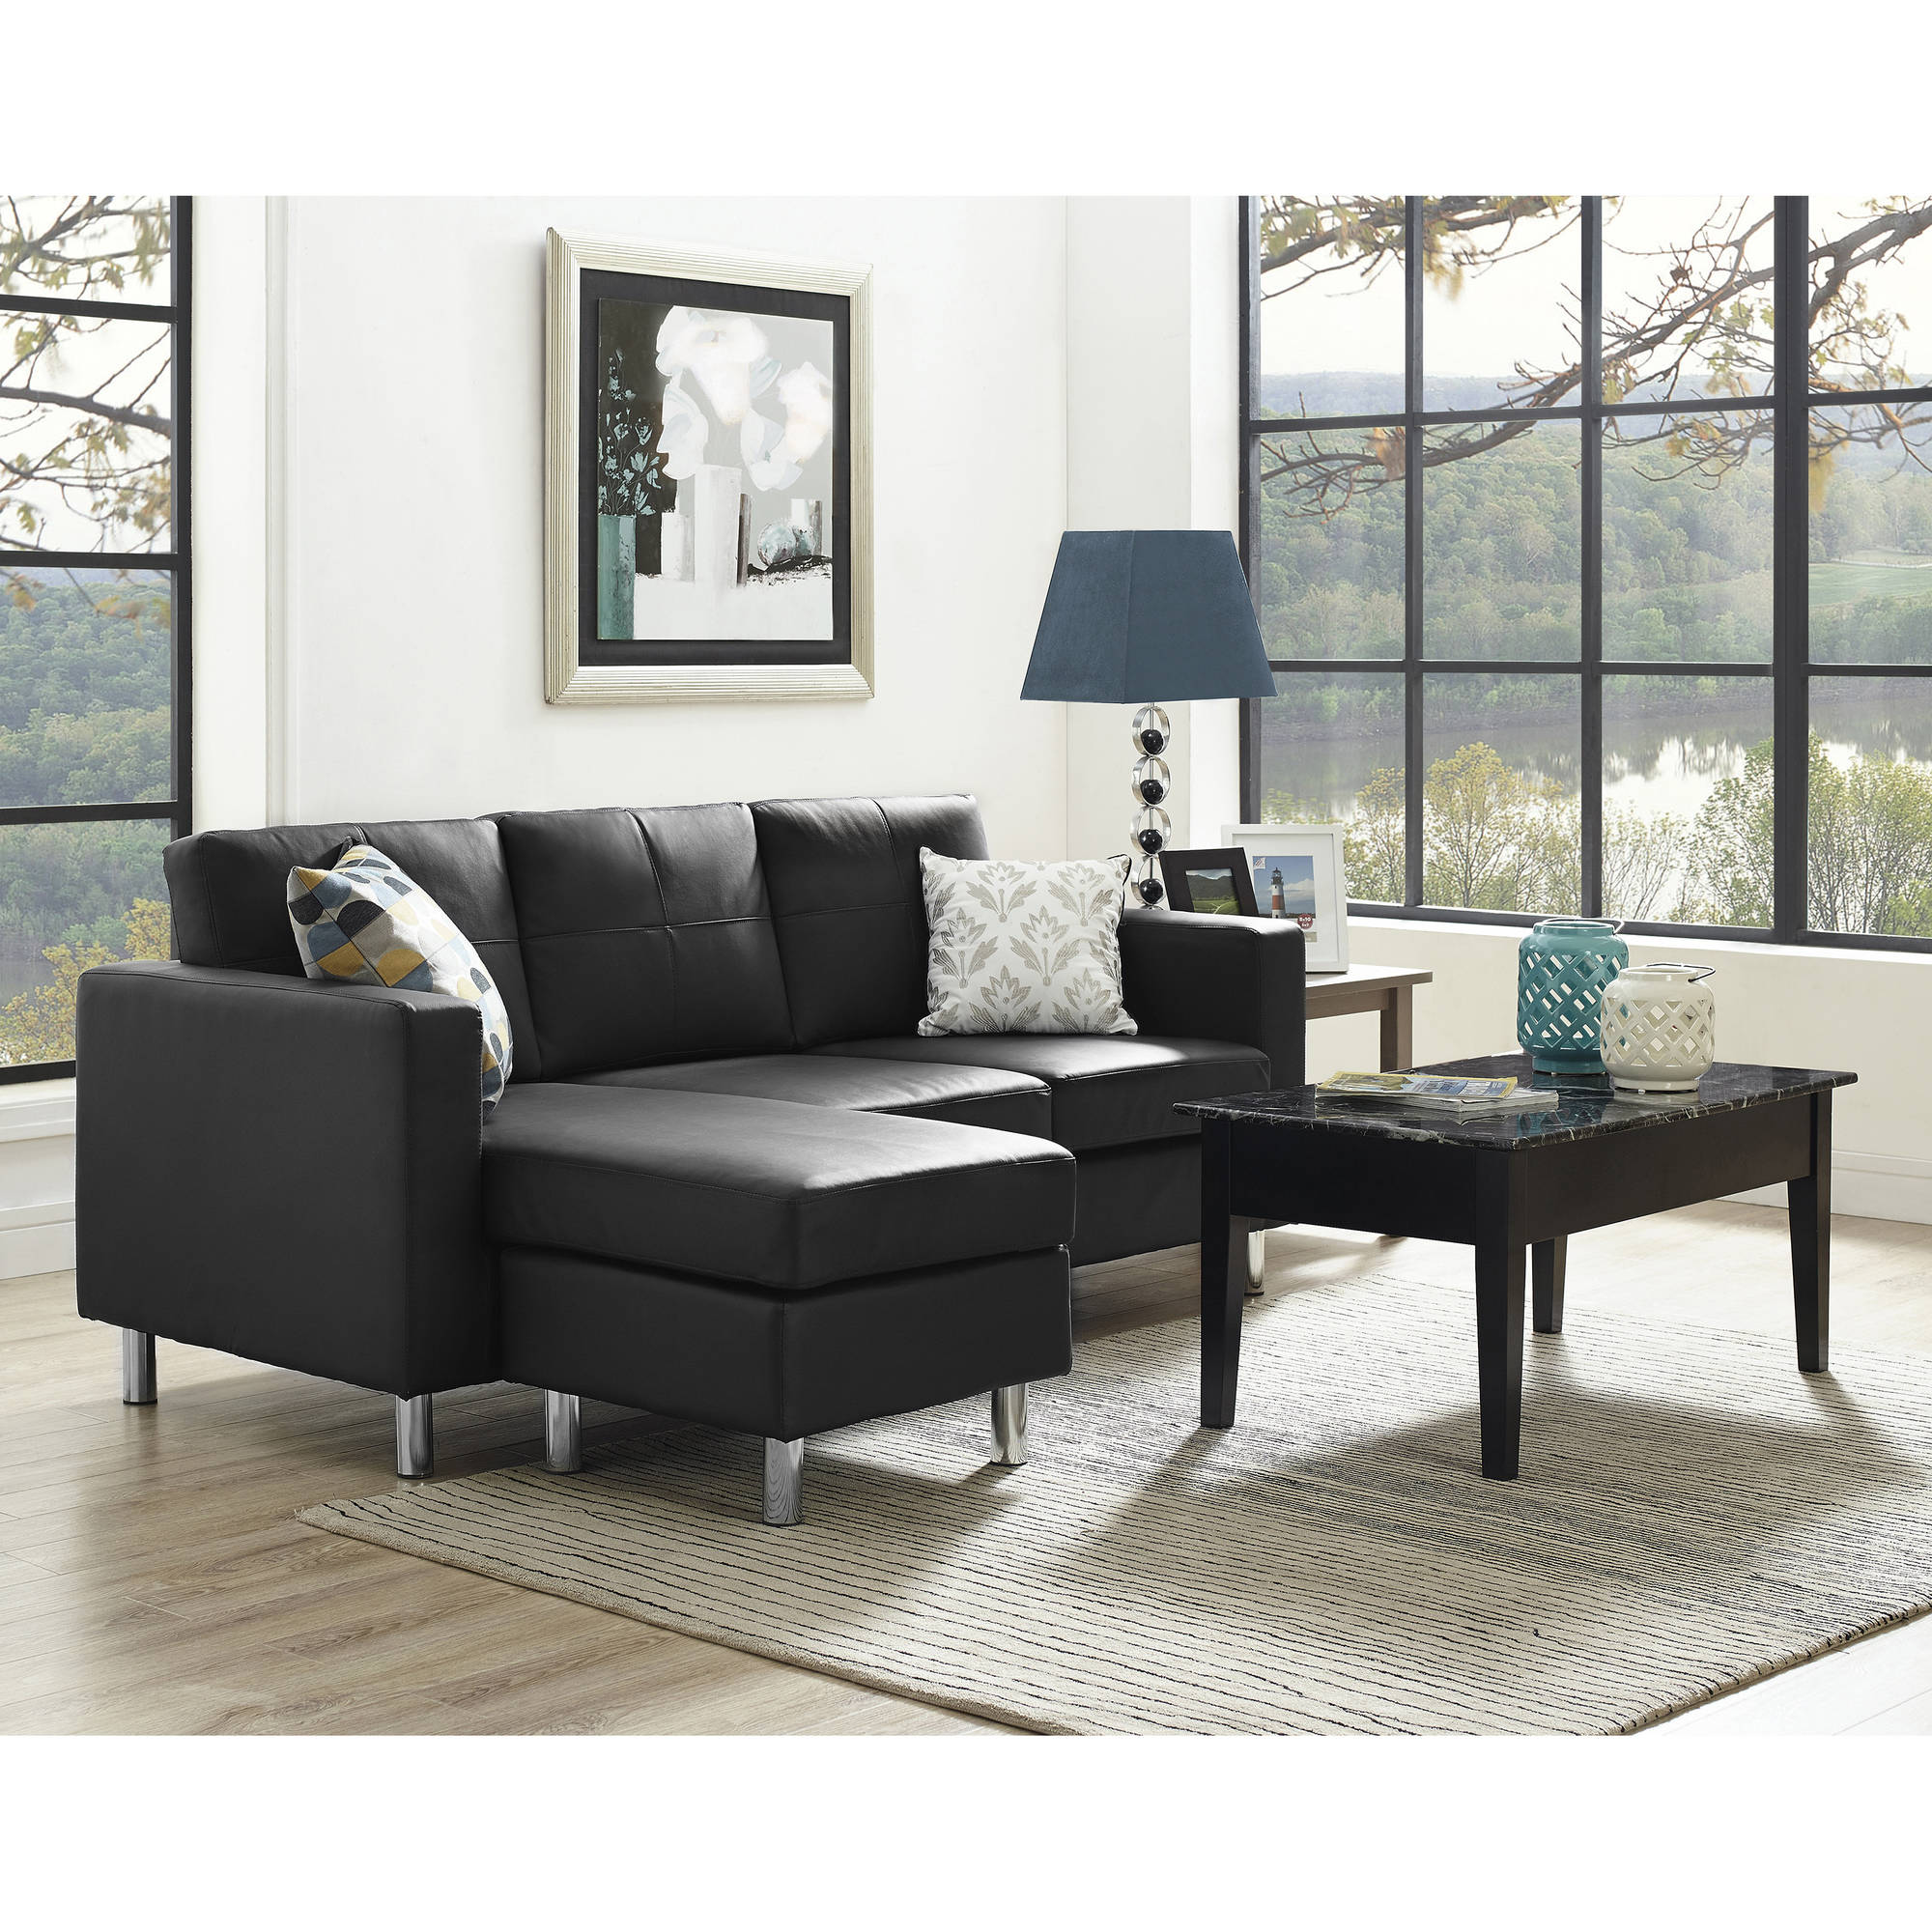 Dorel Living Small Spaces Configurable Sectional Sofa  Multiple Colors Walmart com